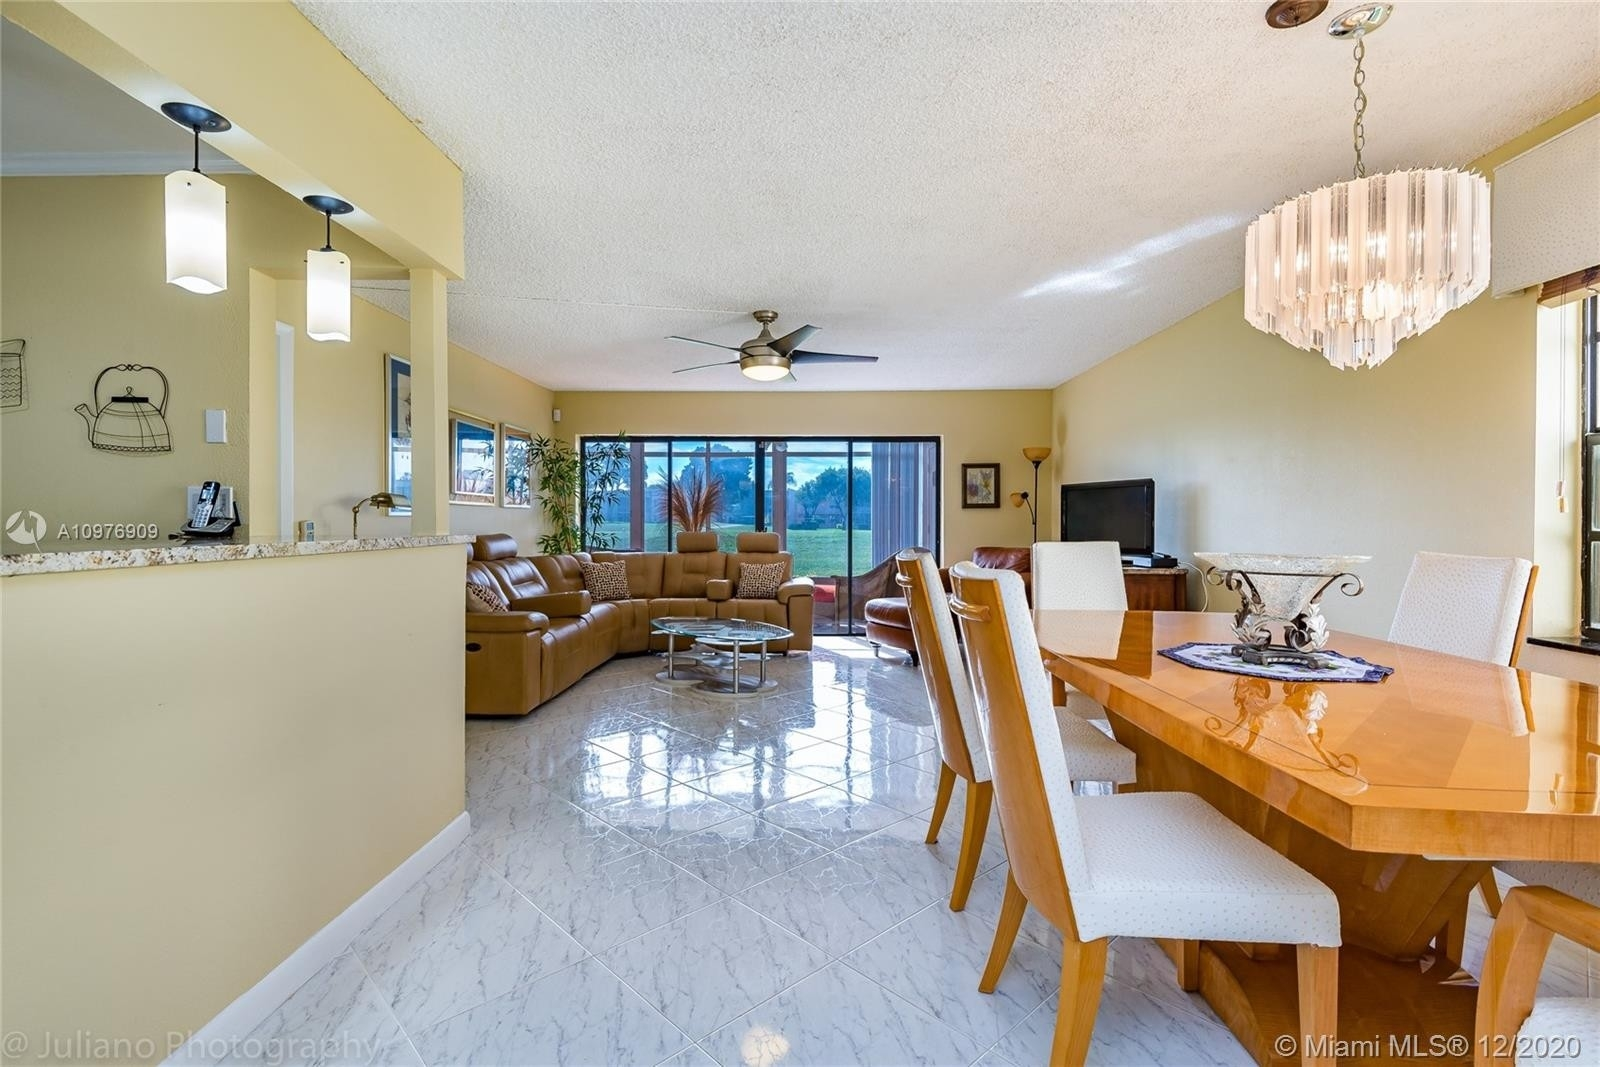 Condominium for Sale at 205 Capri E , 205 Kings Point, Delray Beach, FL 33484